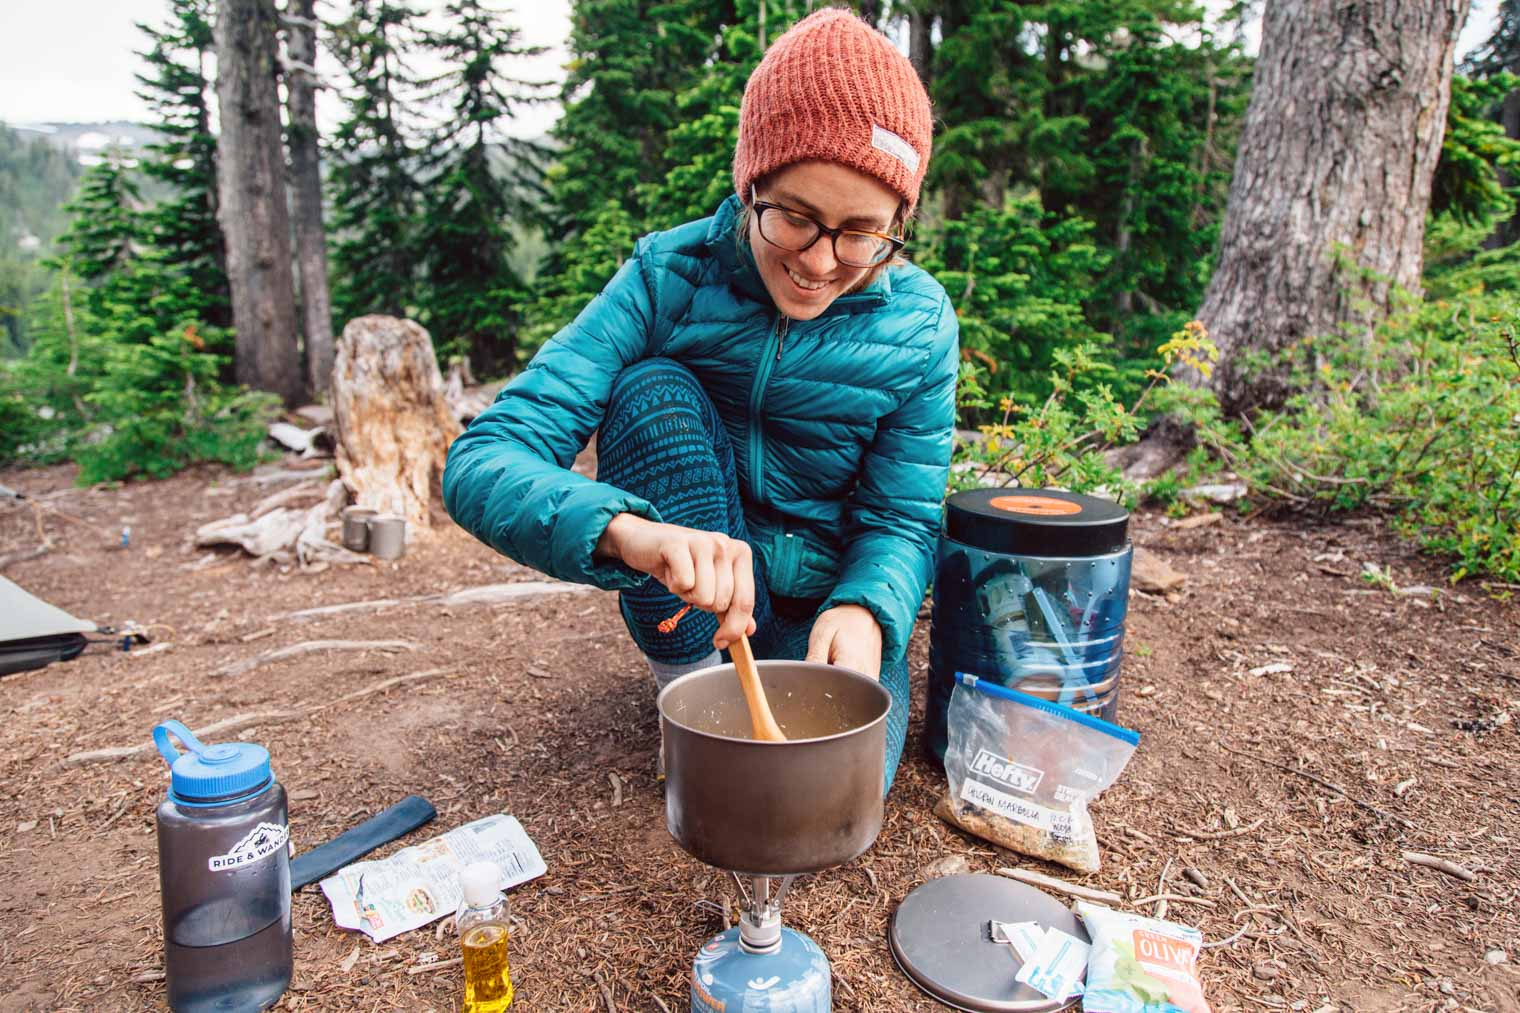 Megan stirring the contents of a pot that is on a backpacking stove